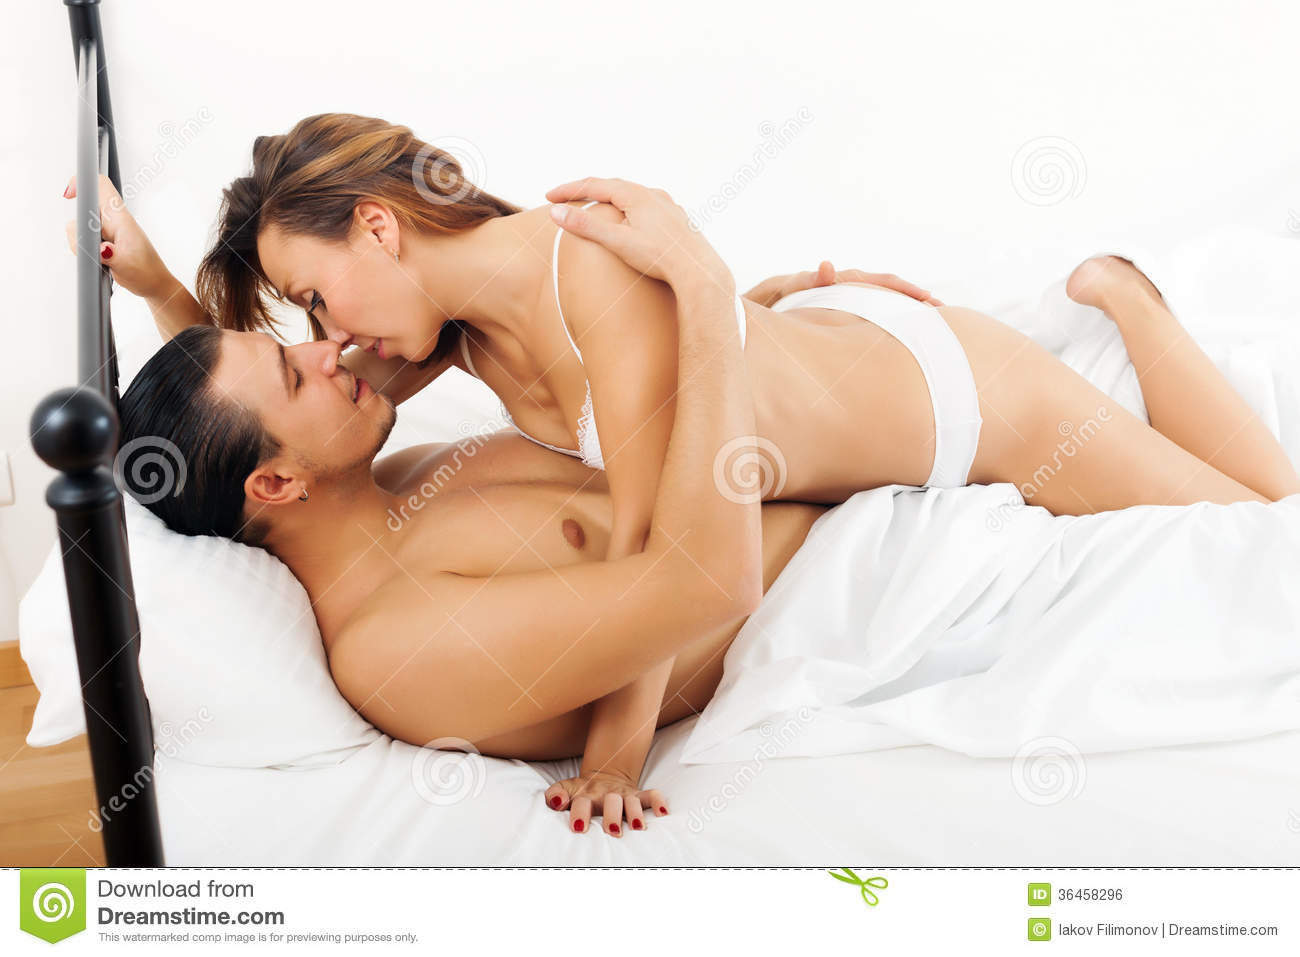 Guy And Girl Having Sex Royalty Free Stock Image - Image -4692